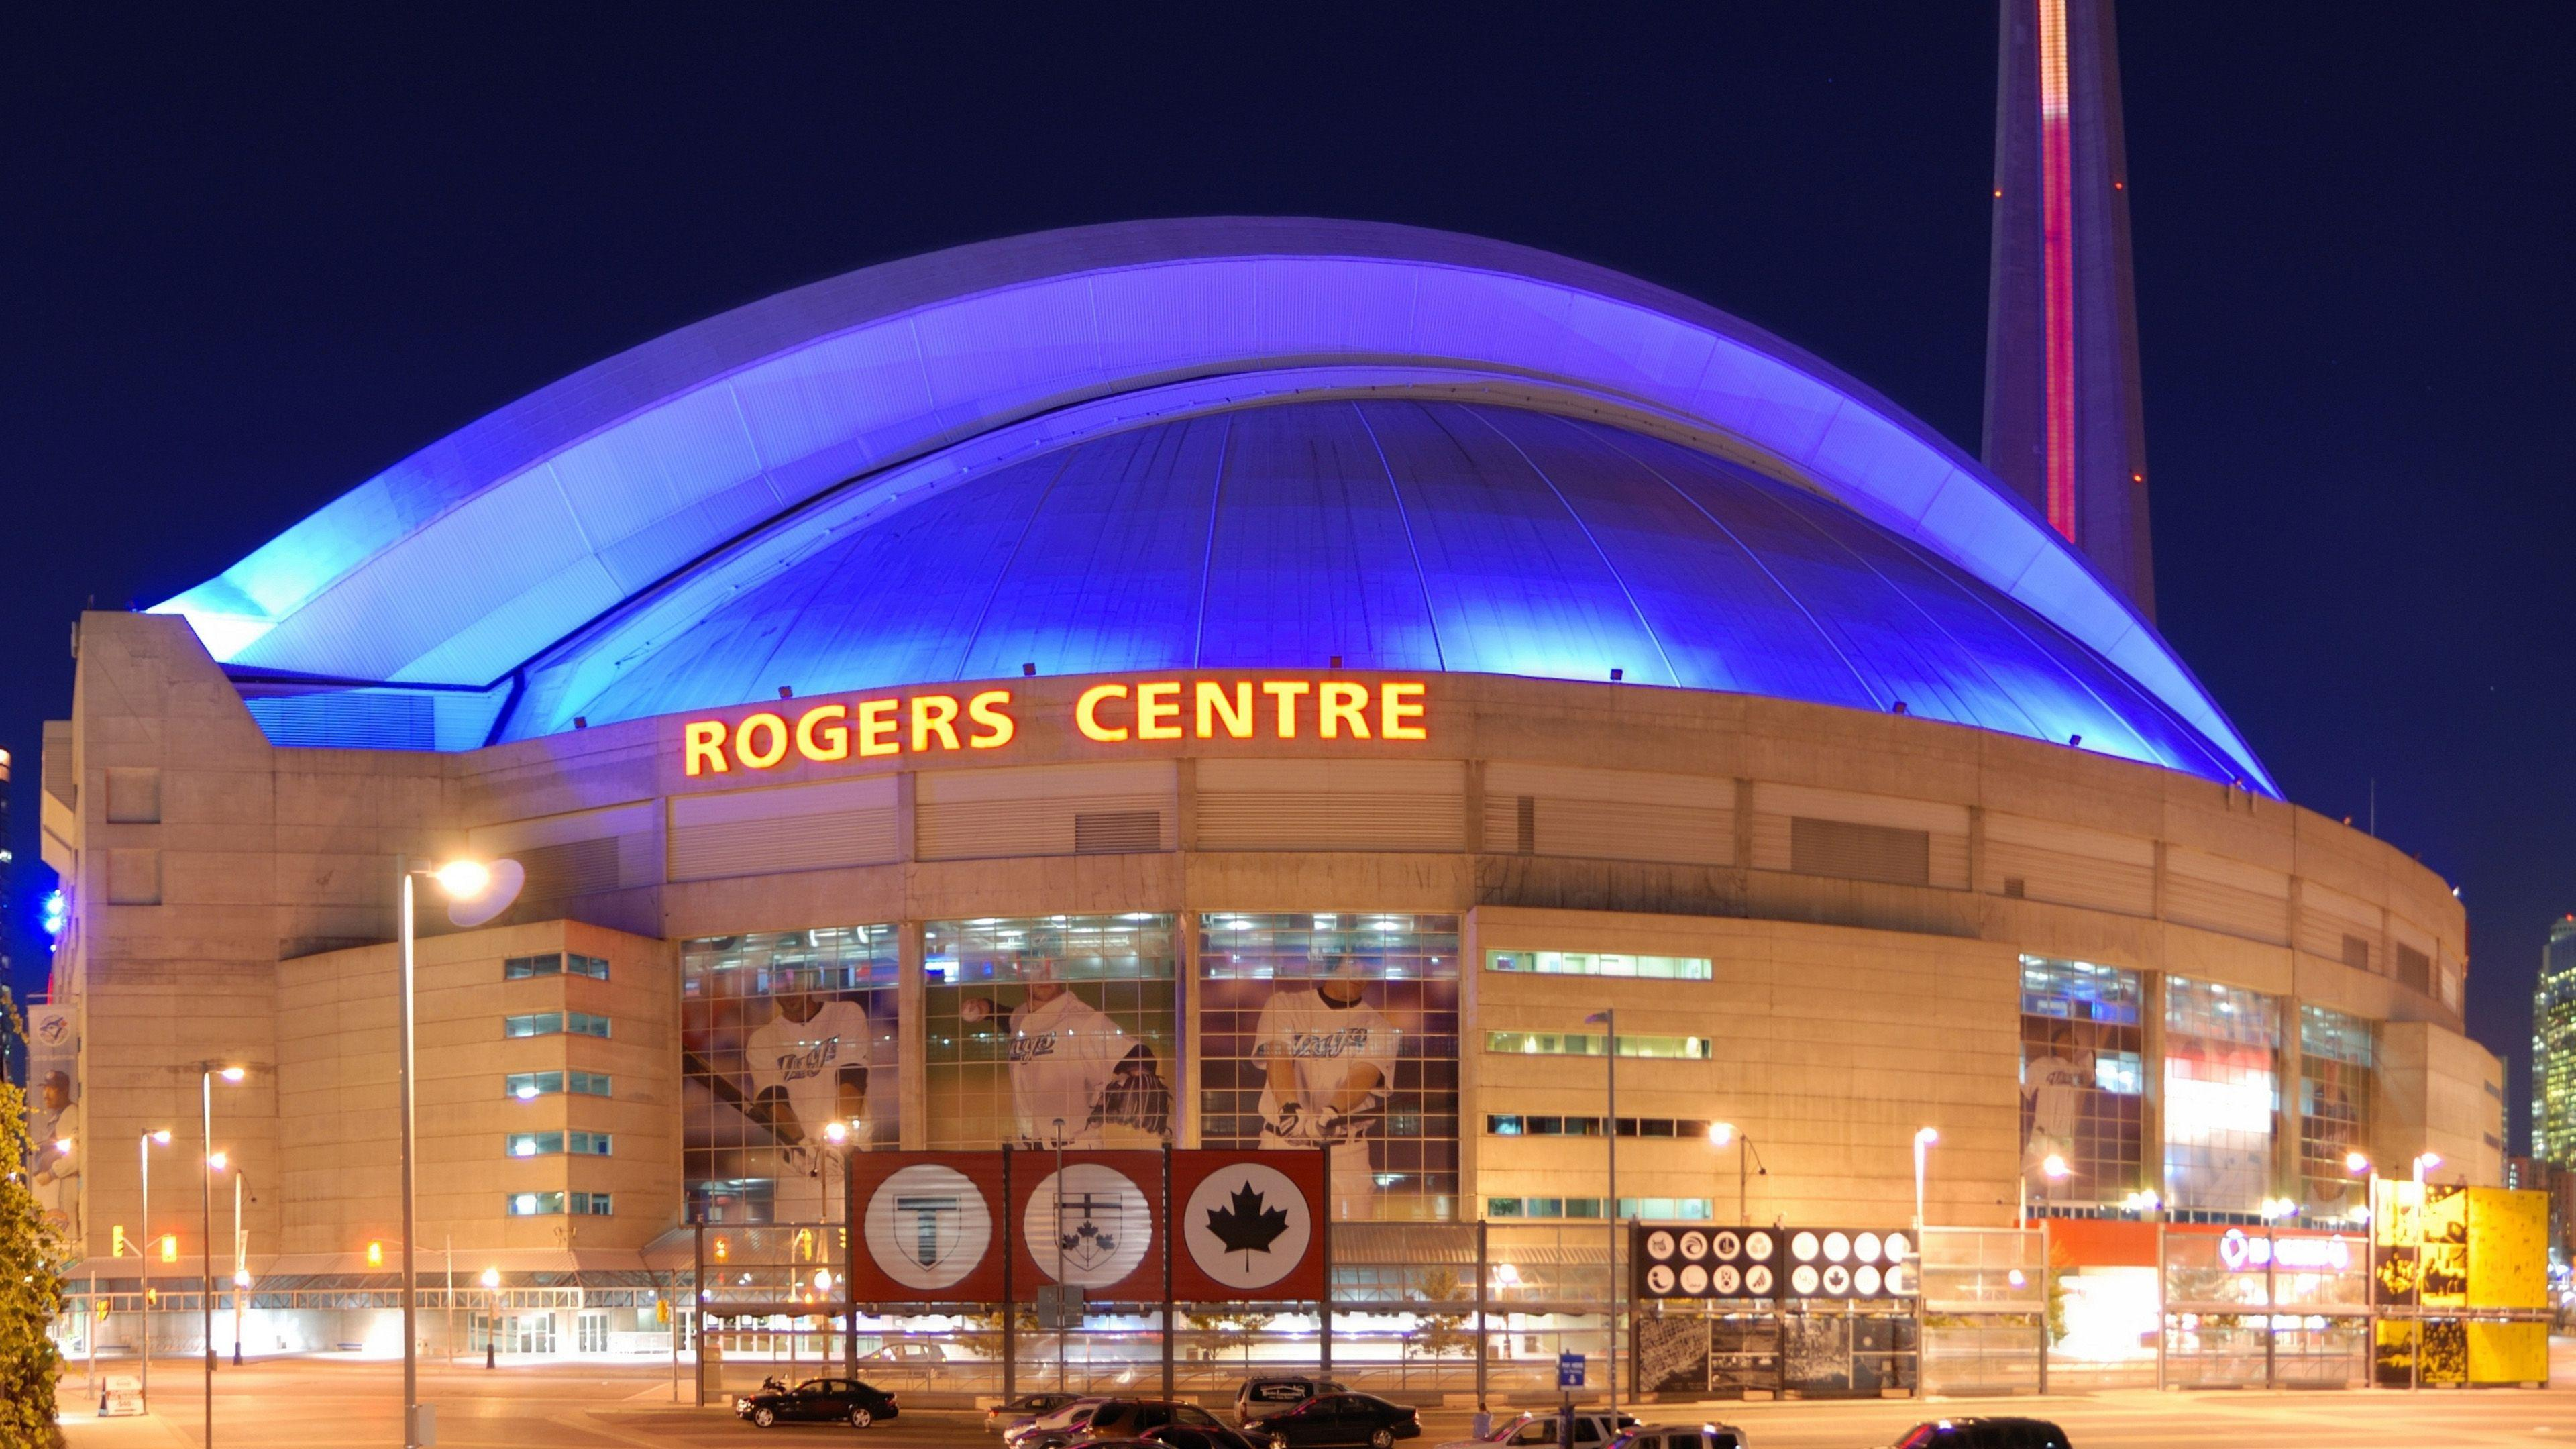 Toronto Blue Jays ballpark Rogers Centre, Toronto, Canada Wallpapers